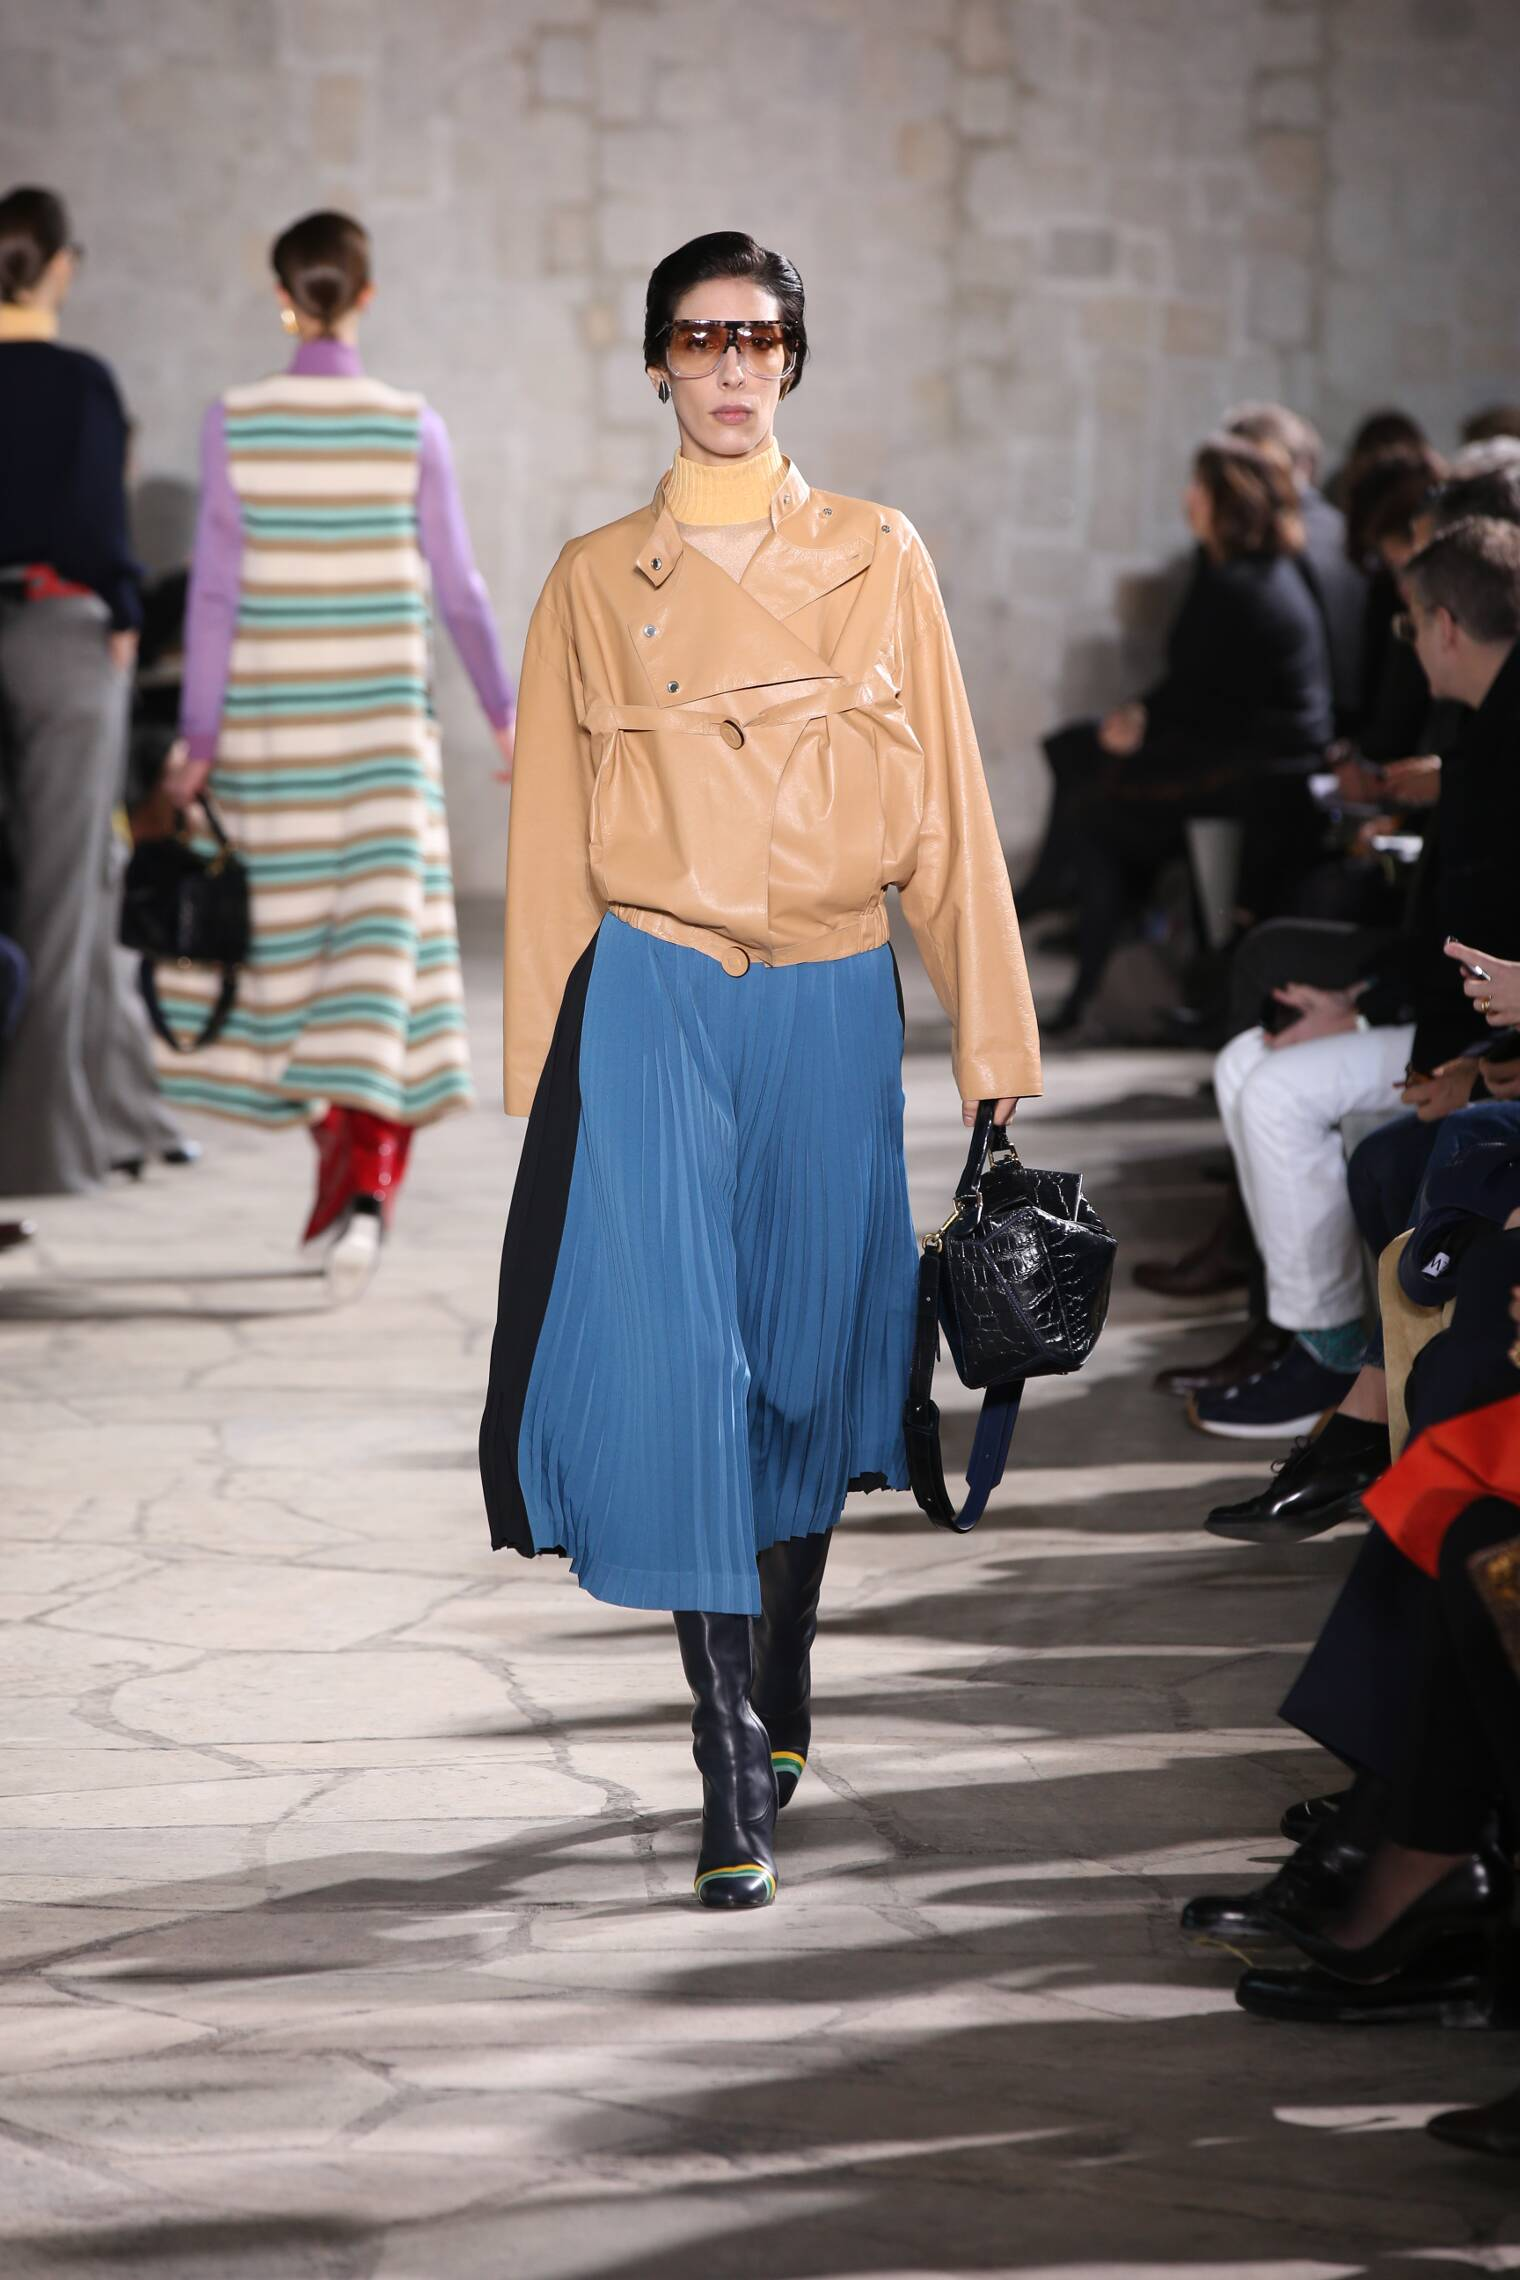 2015 Fashion Woman Model Loewe Collection Catwalk